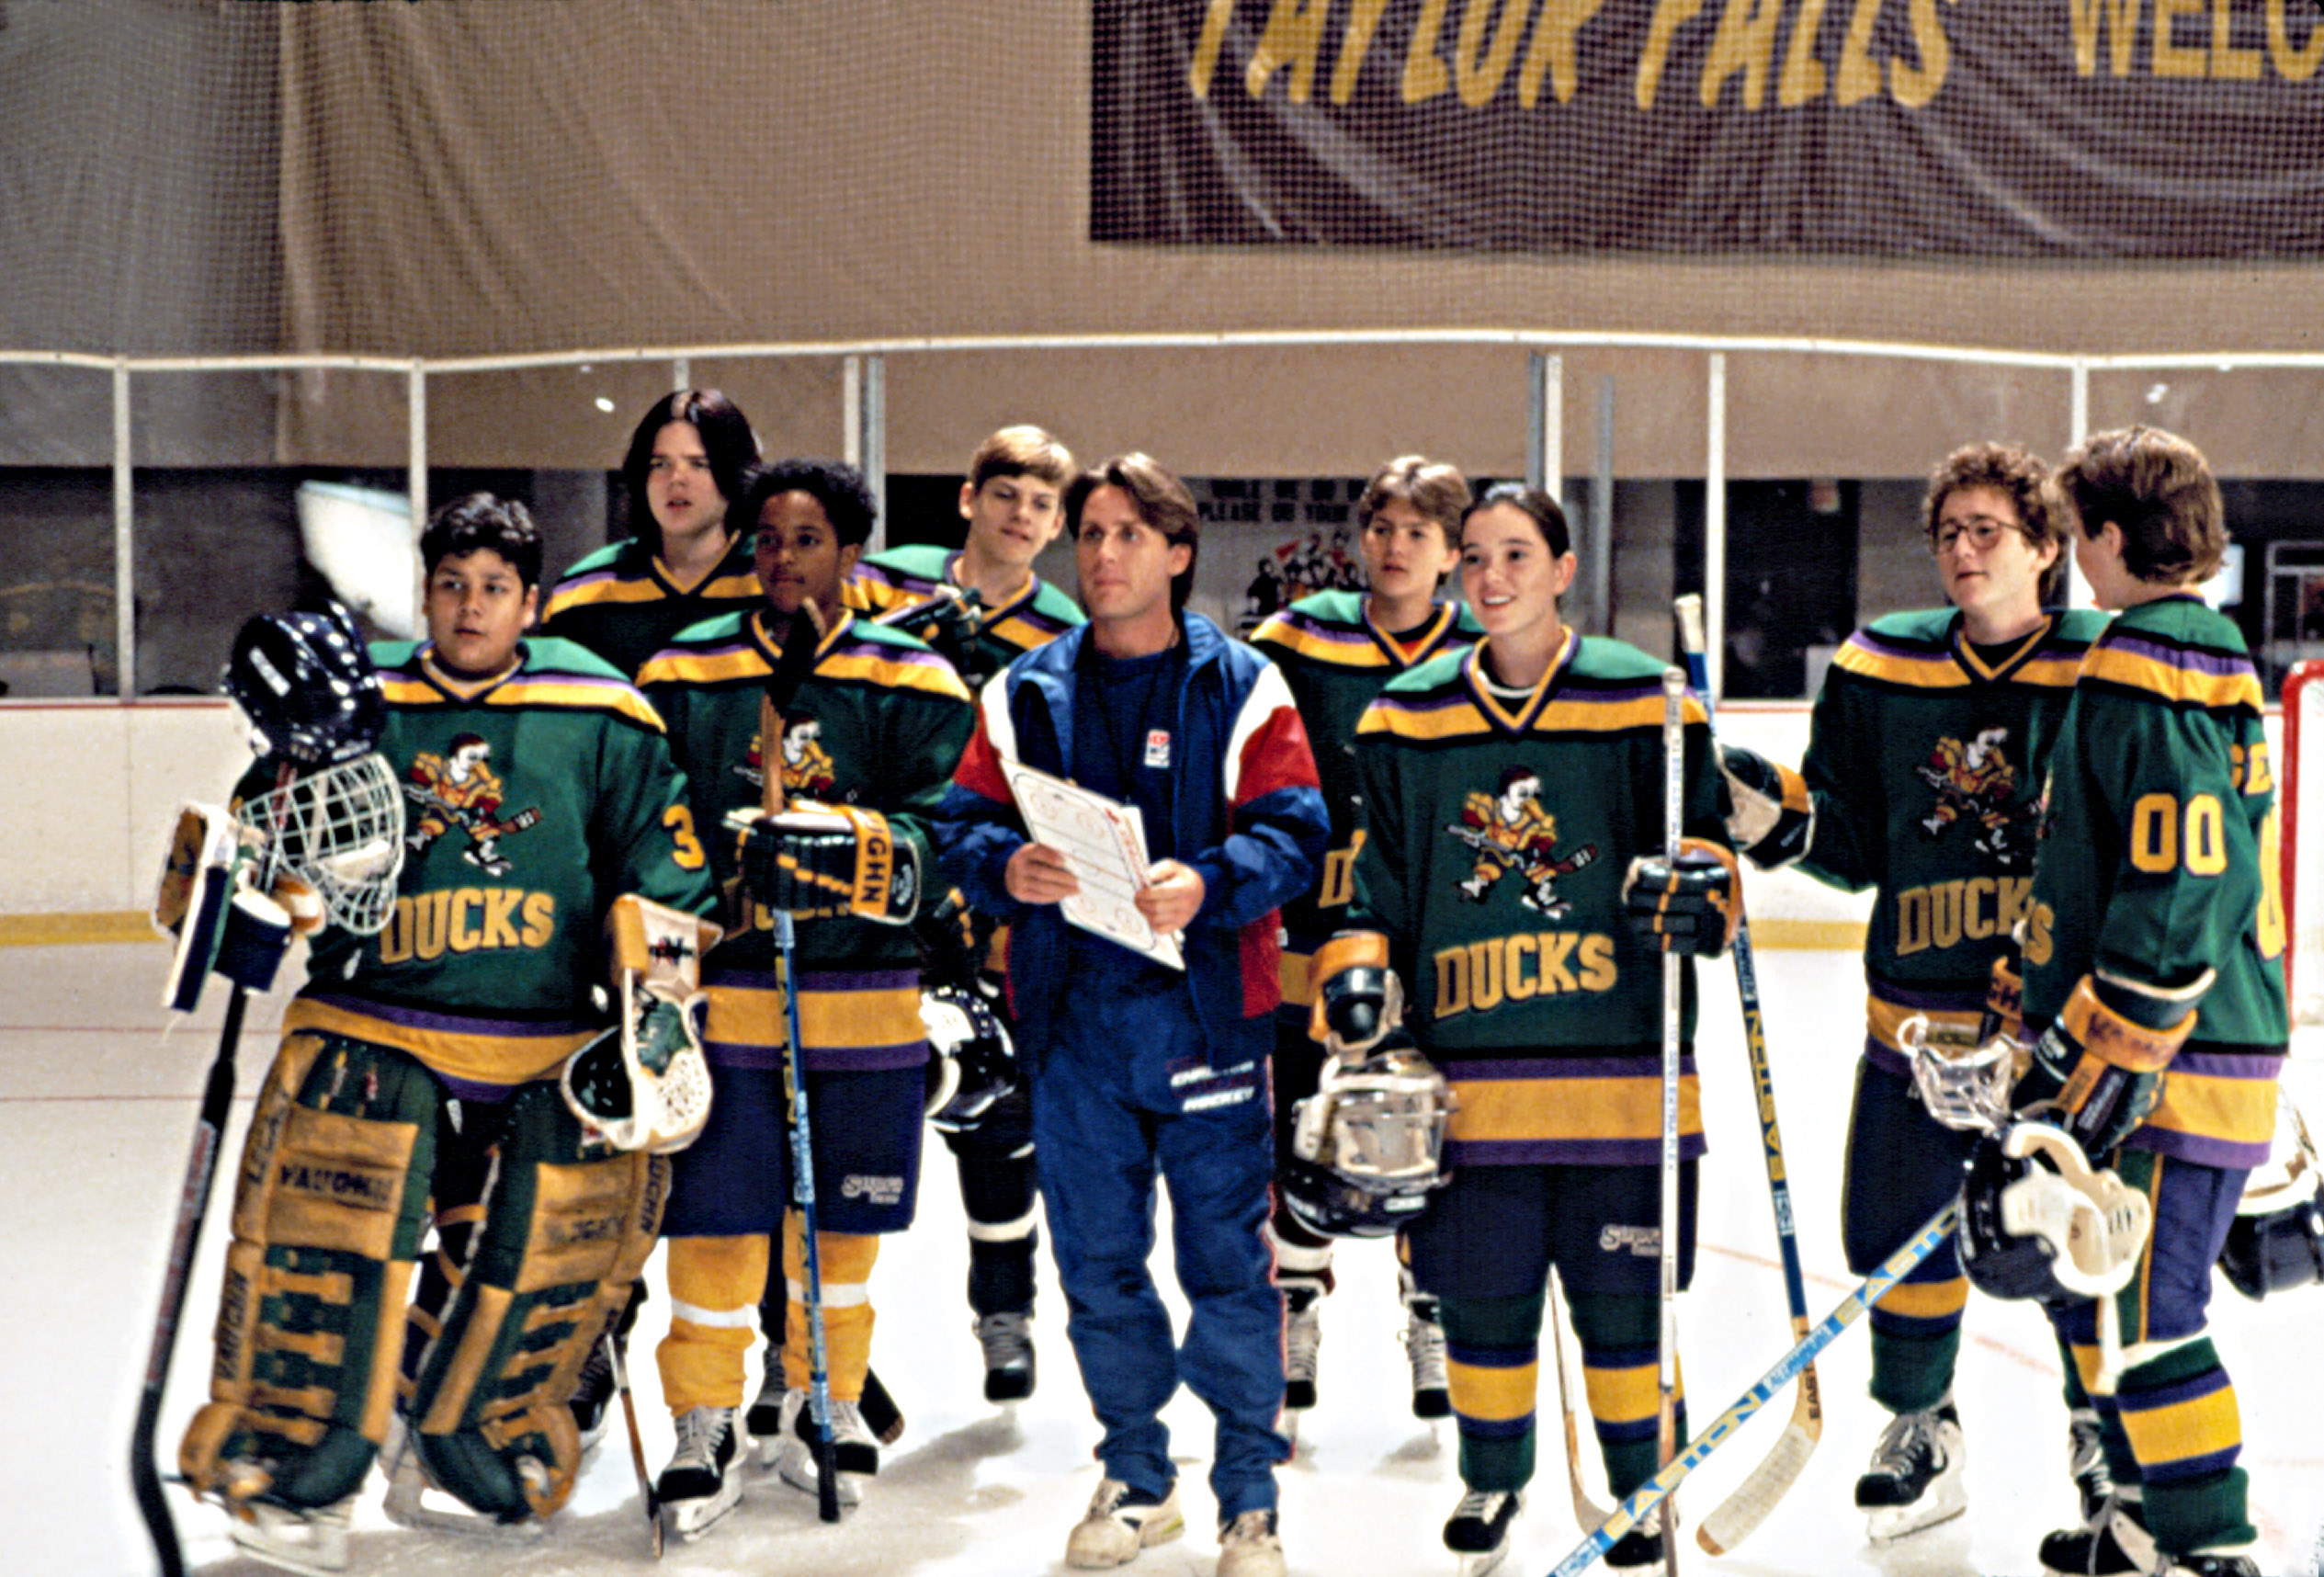 outlet store 9c7ac 55f23 The Mighty Ducks may take the ice again as a television series about  Disney s underdog Minnesota hockey team is currently in development.